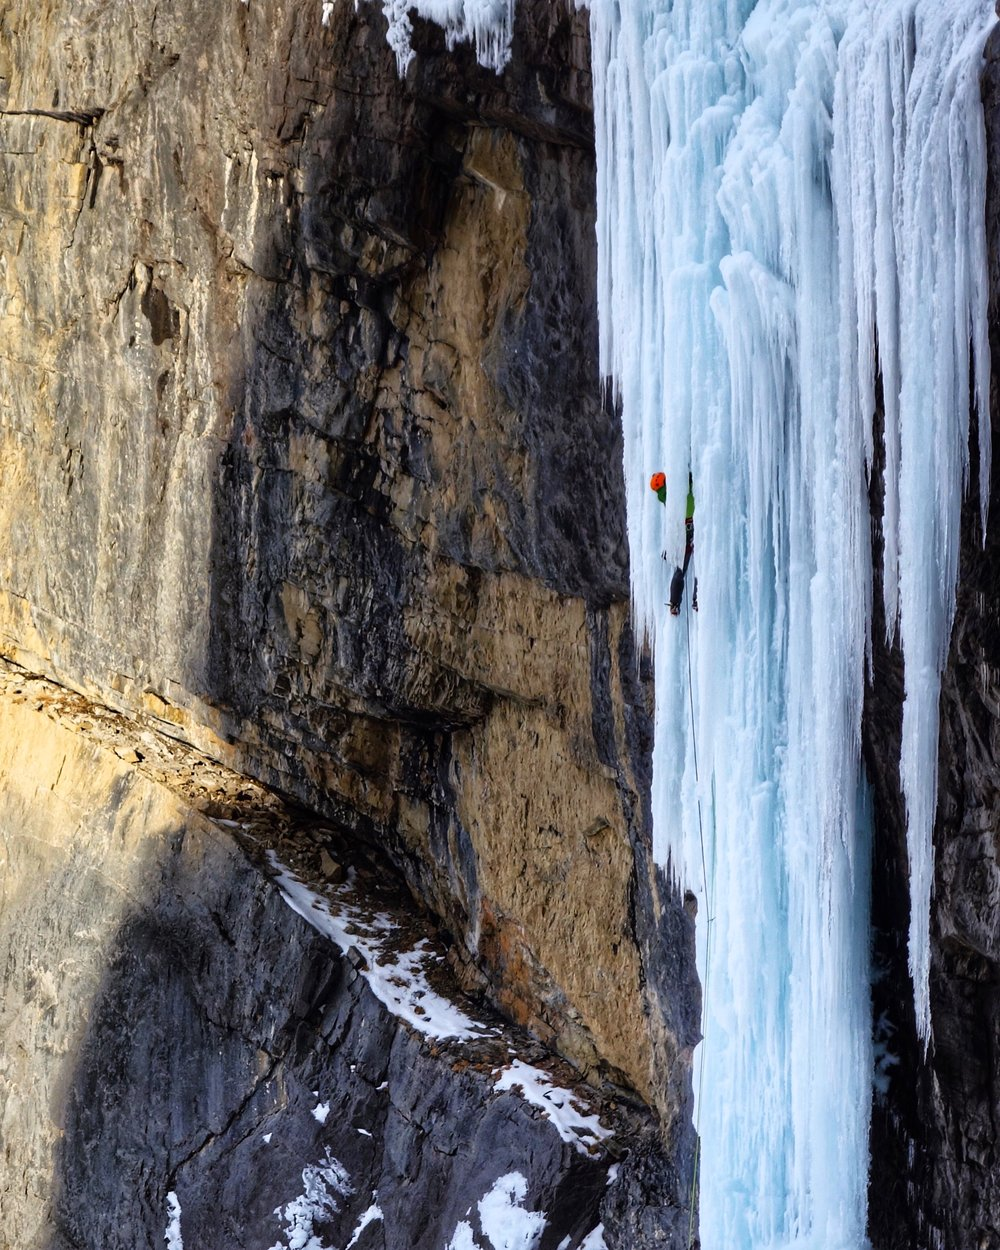 Matthias Scherer on Oh le Tabernac, Icefields Parkway, Canada - picture Tanja Schmitt